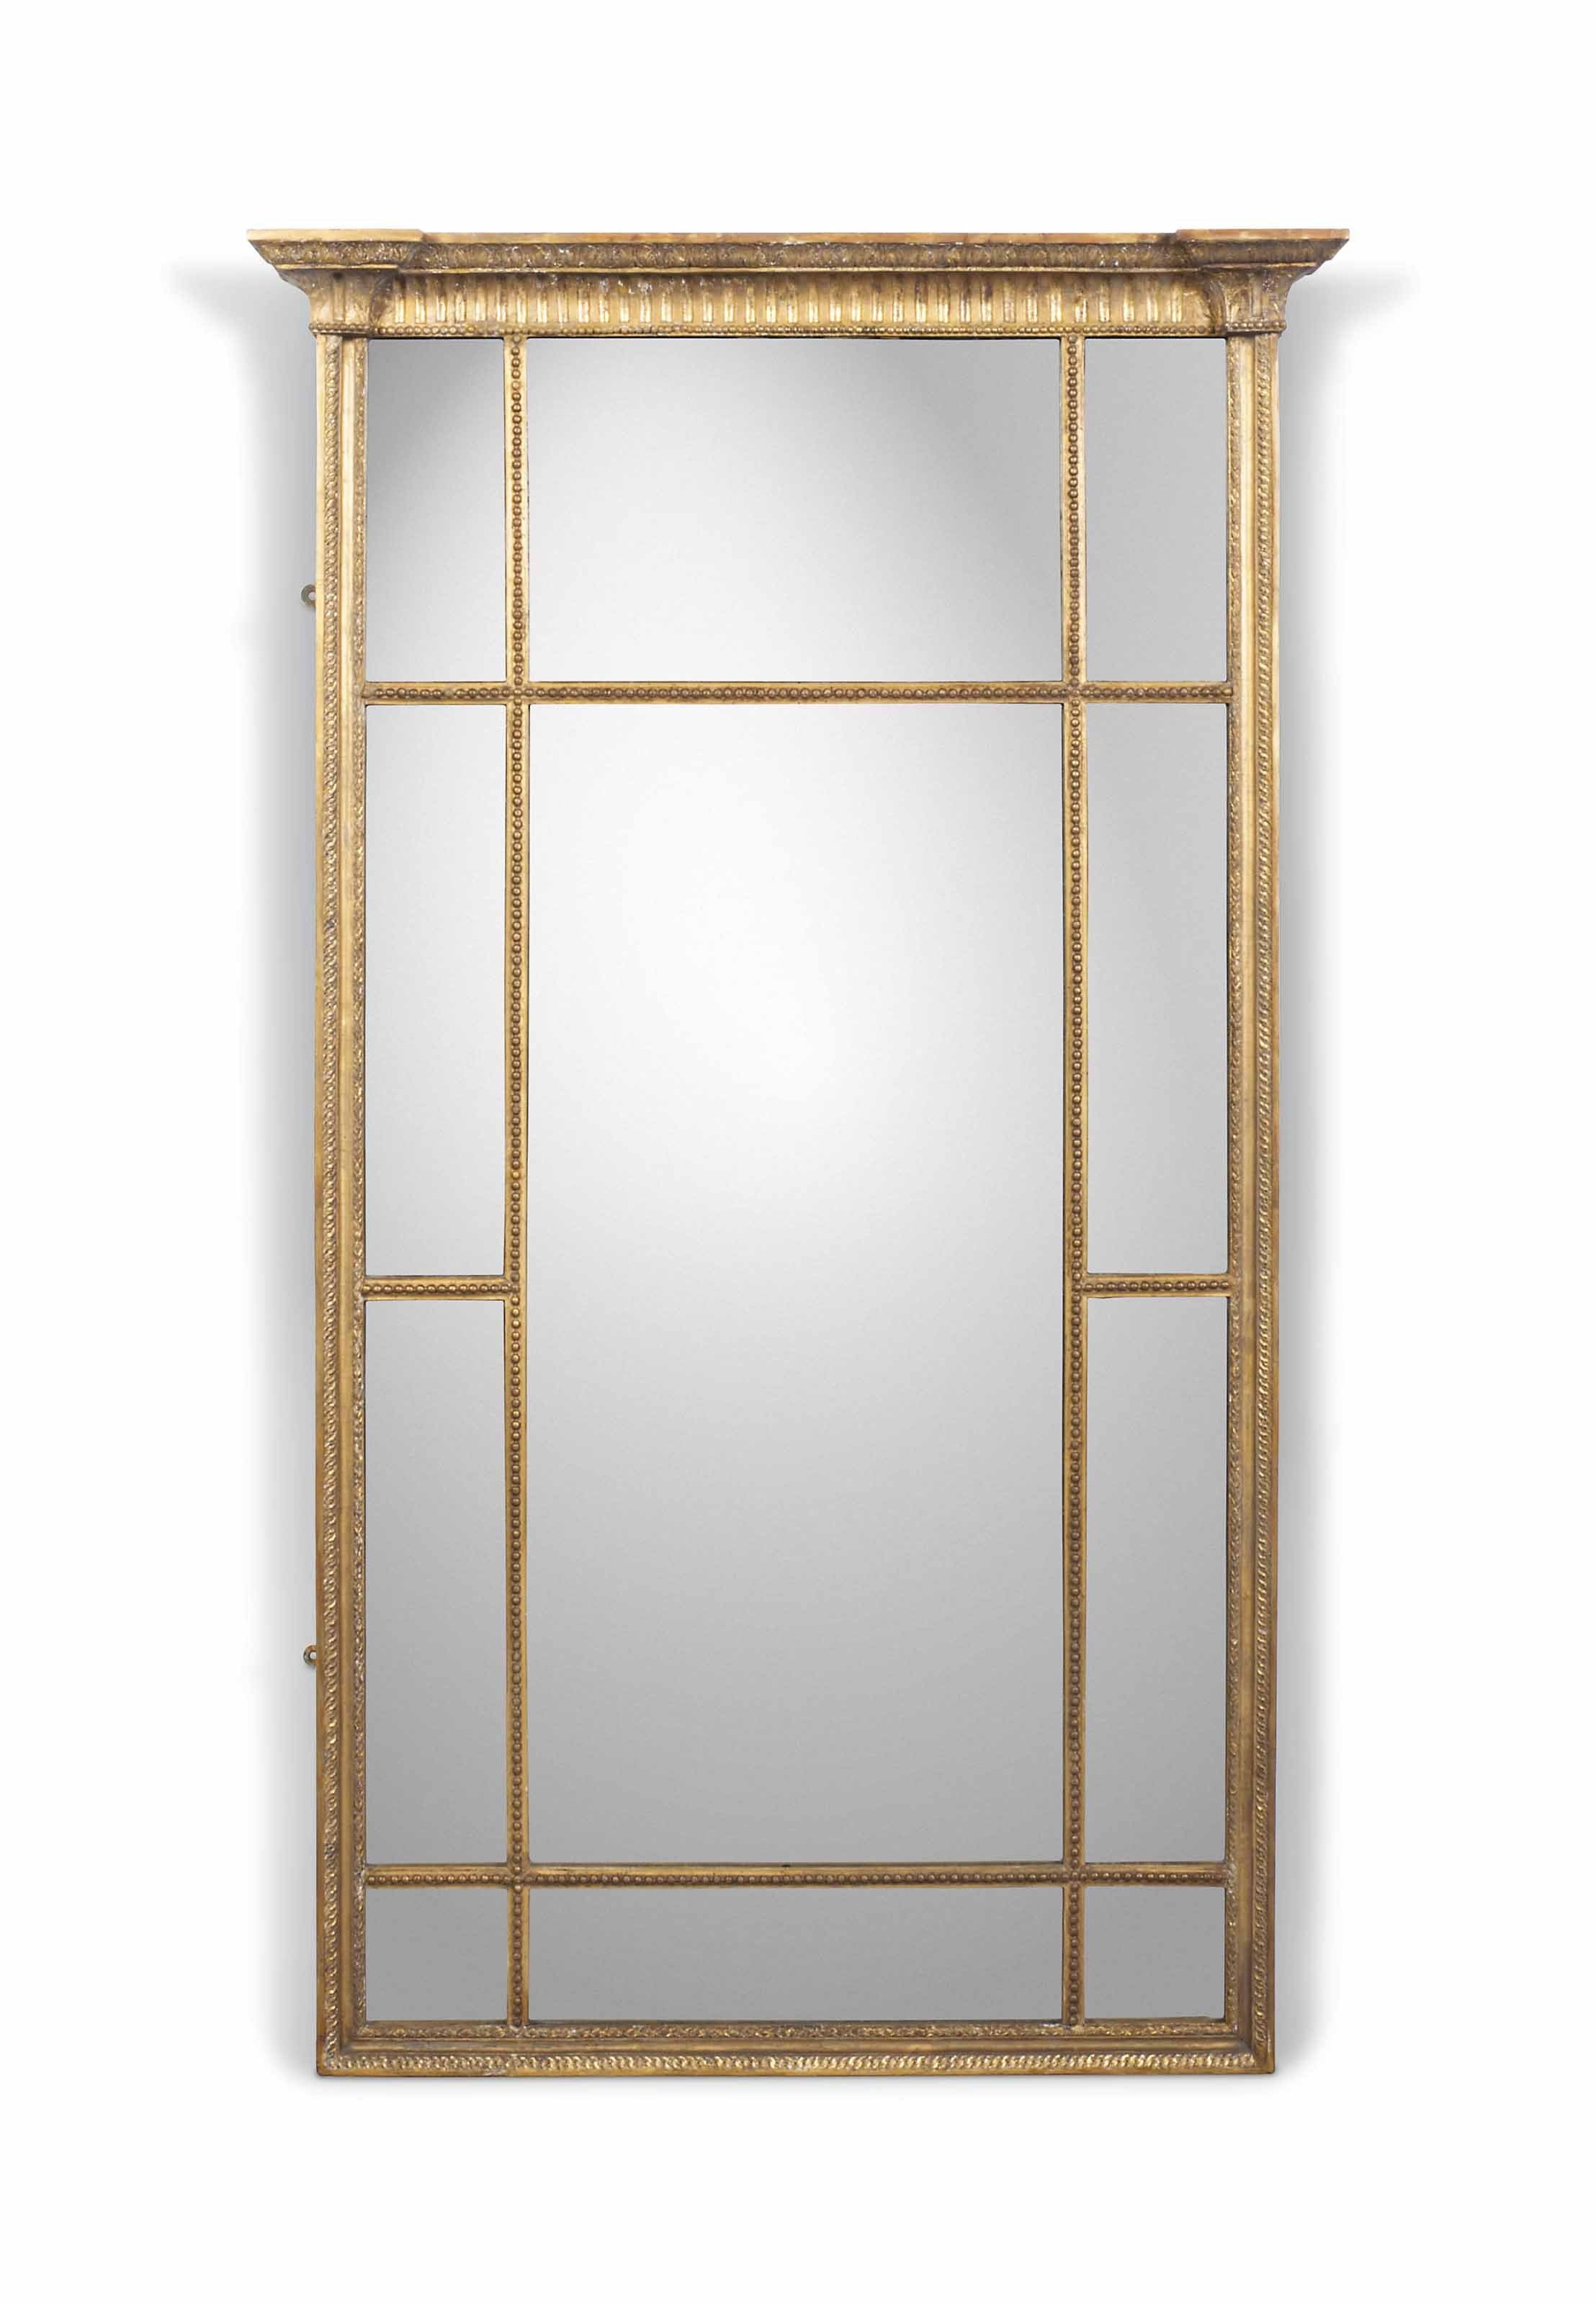 A GILTWOOD AND COMPOSITION PIER MIRROR